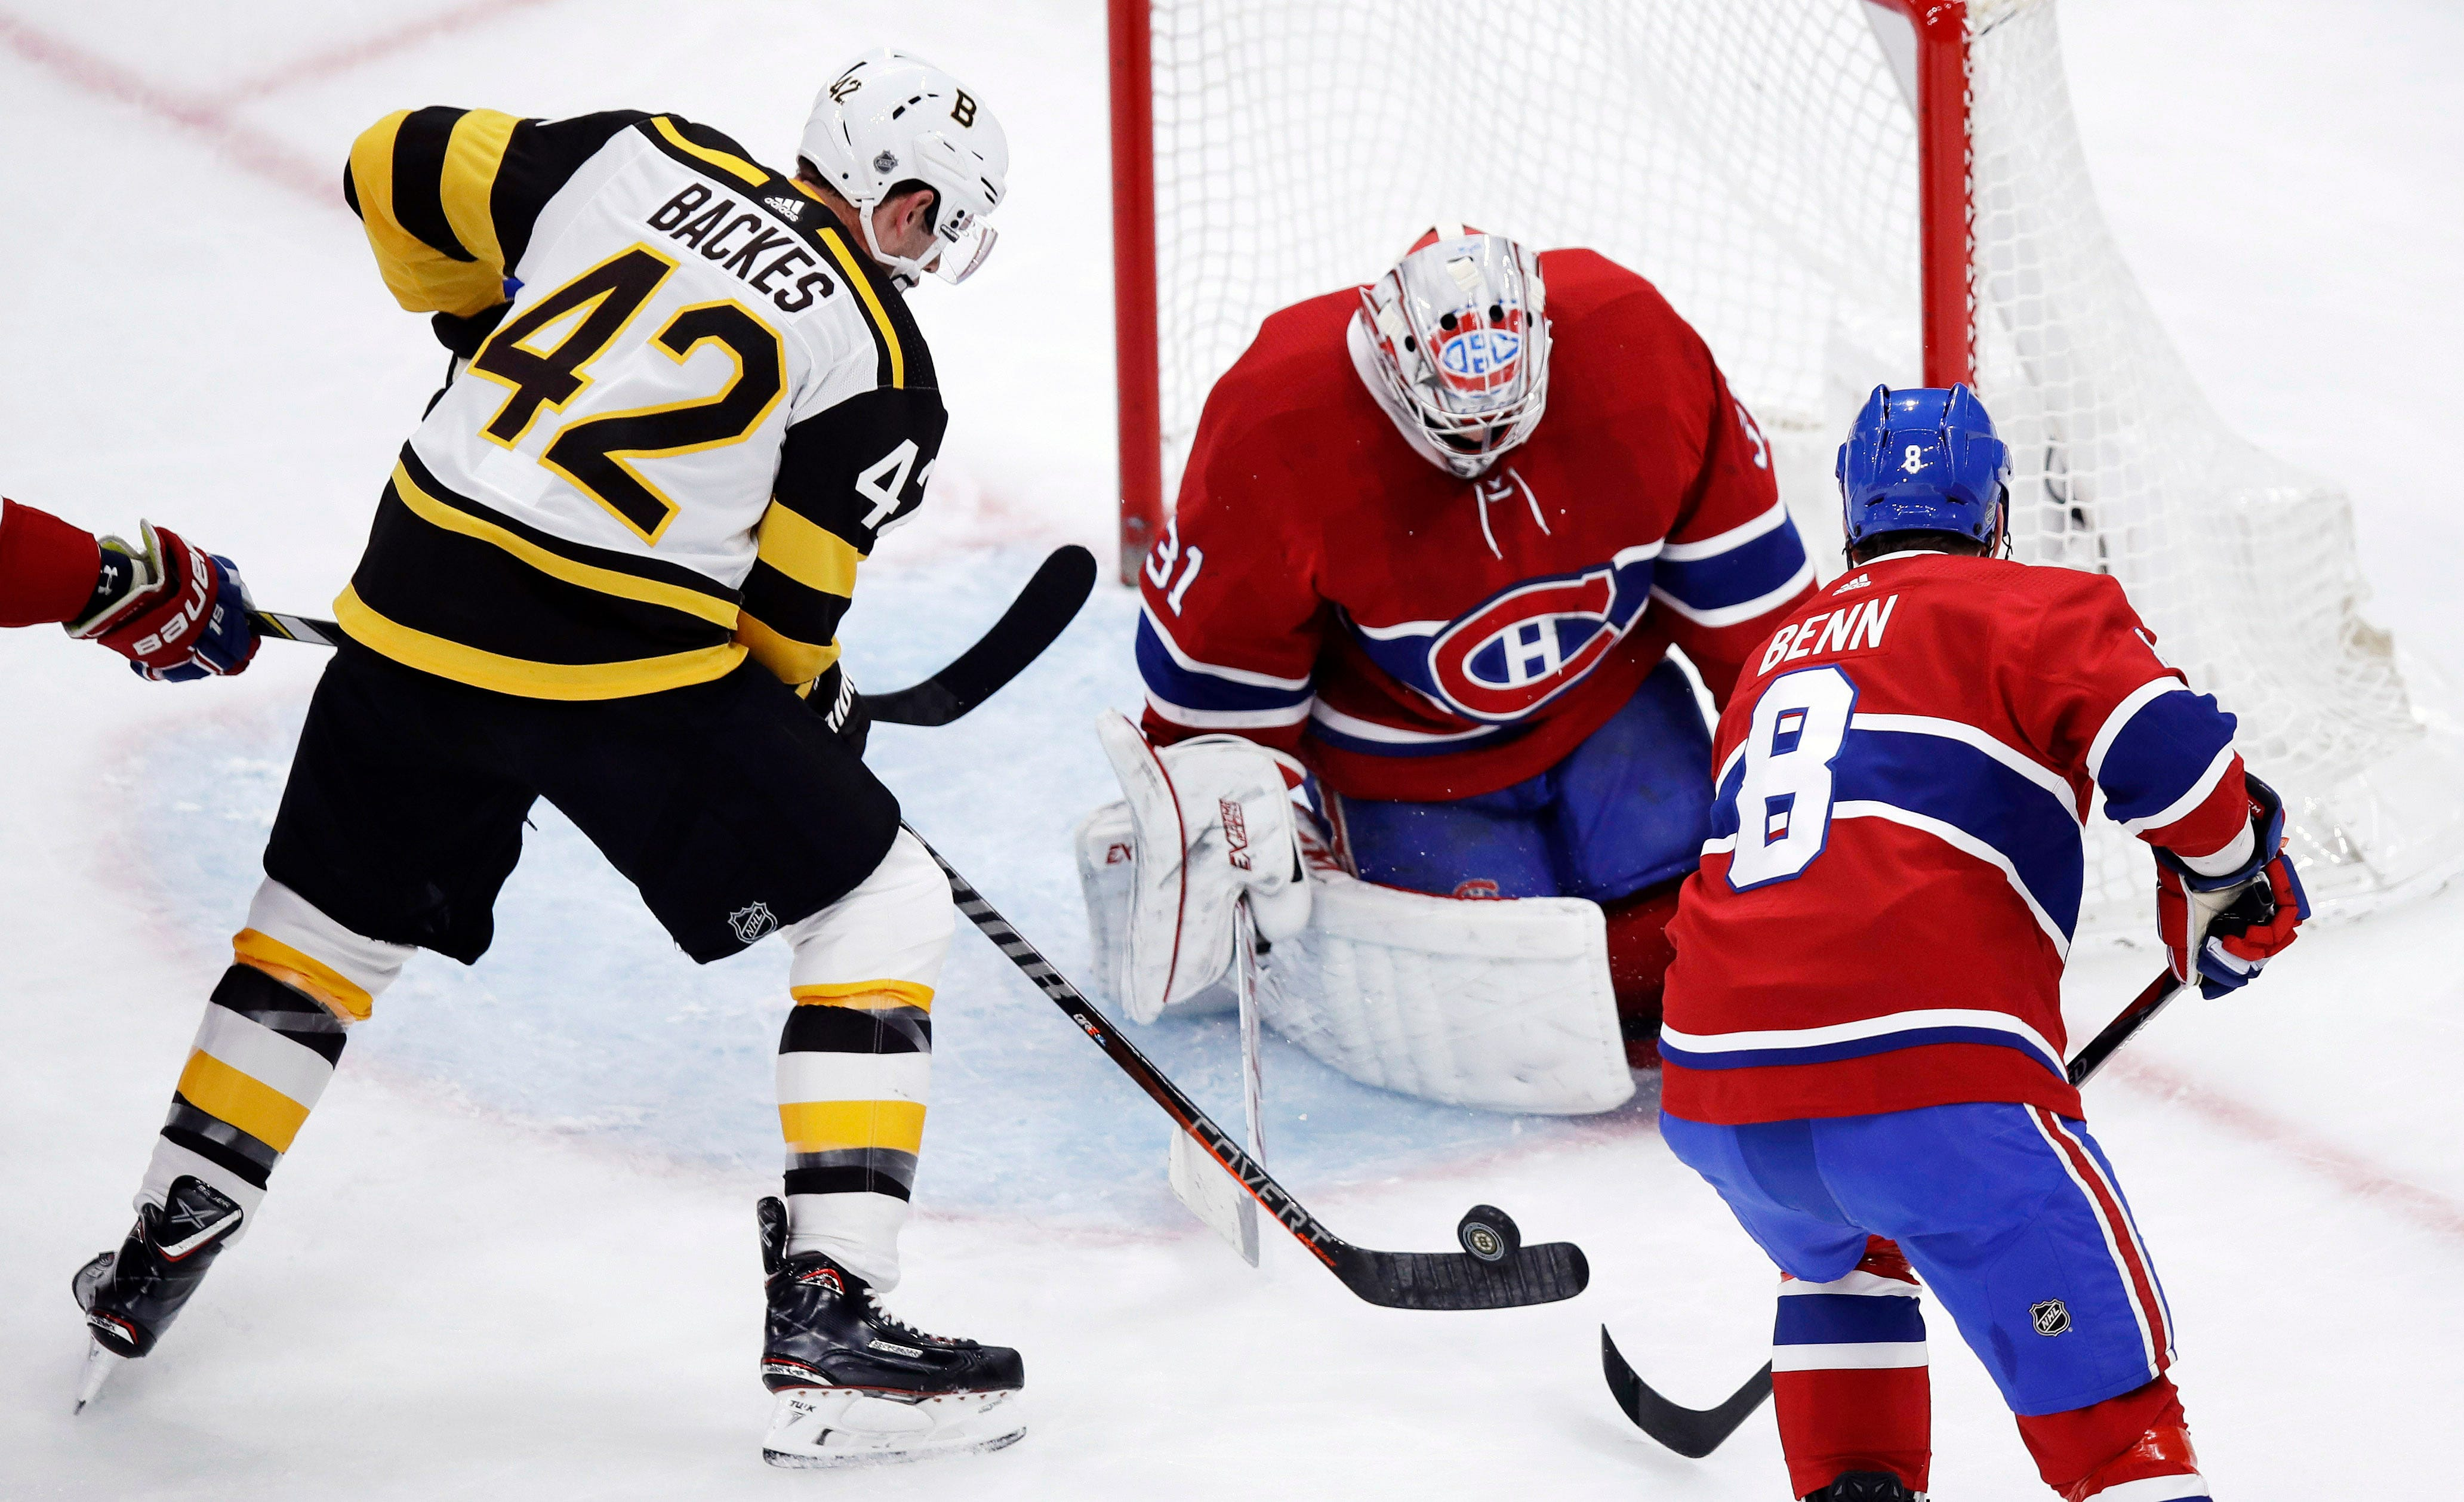 Petry swats in OT winner to lead Montreal past Boston 3-2